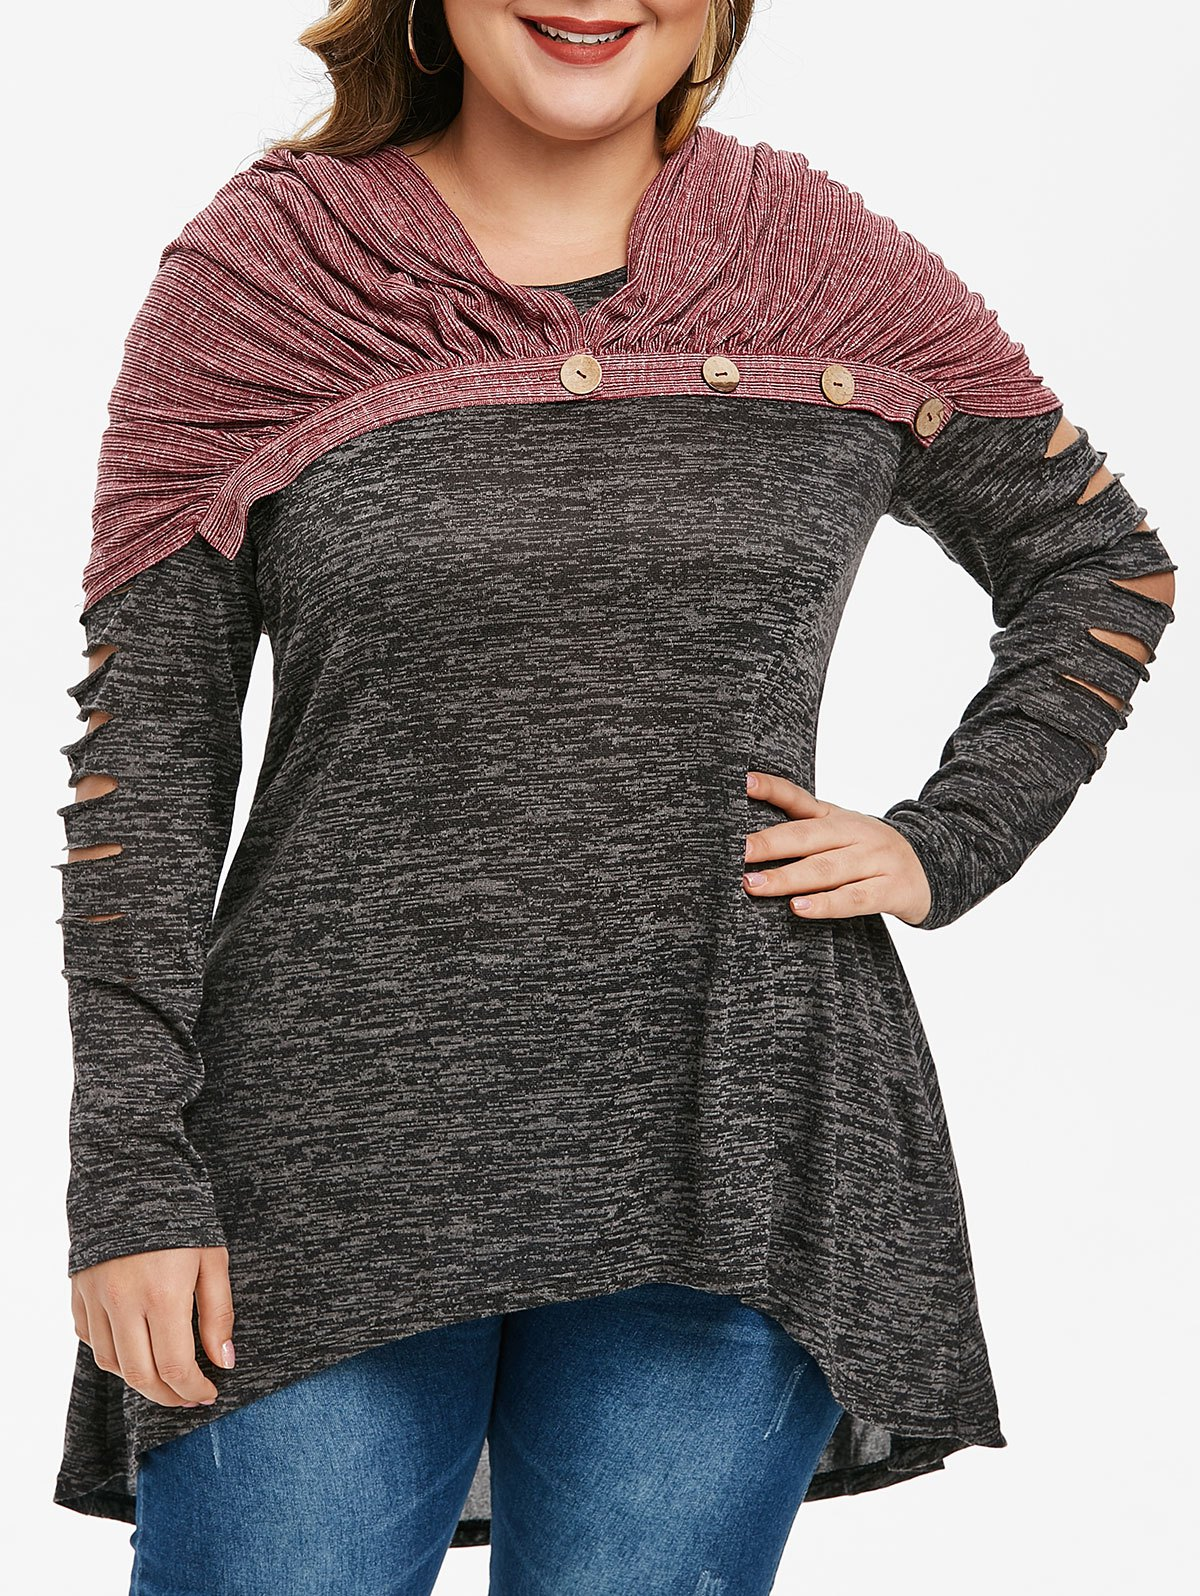 Plus Size Ladder Cut Ripped Marled T Shirt With Button Scarf